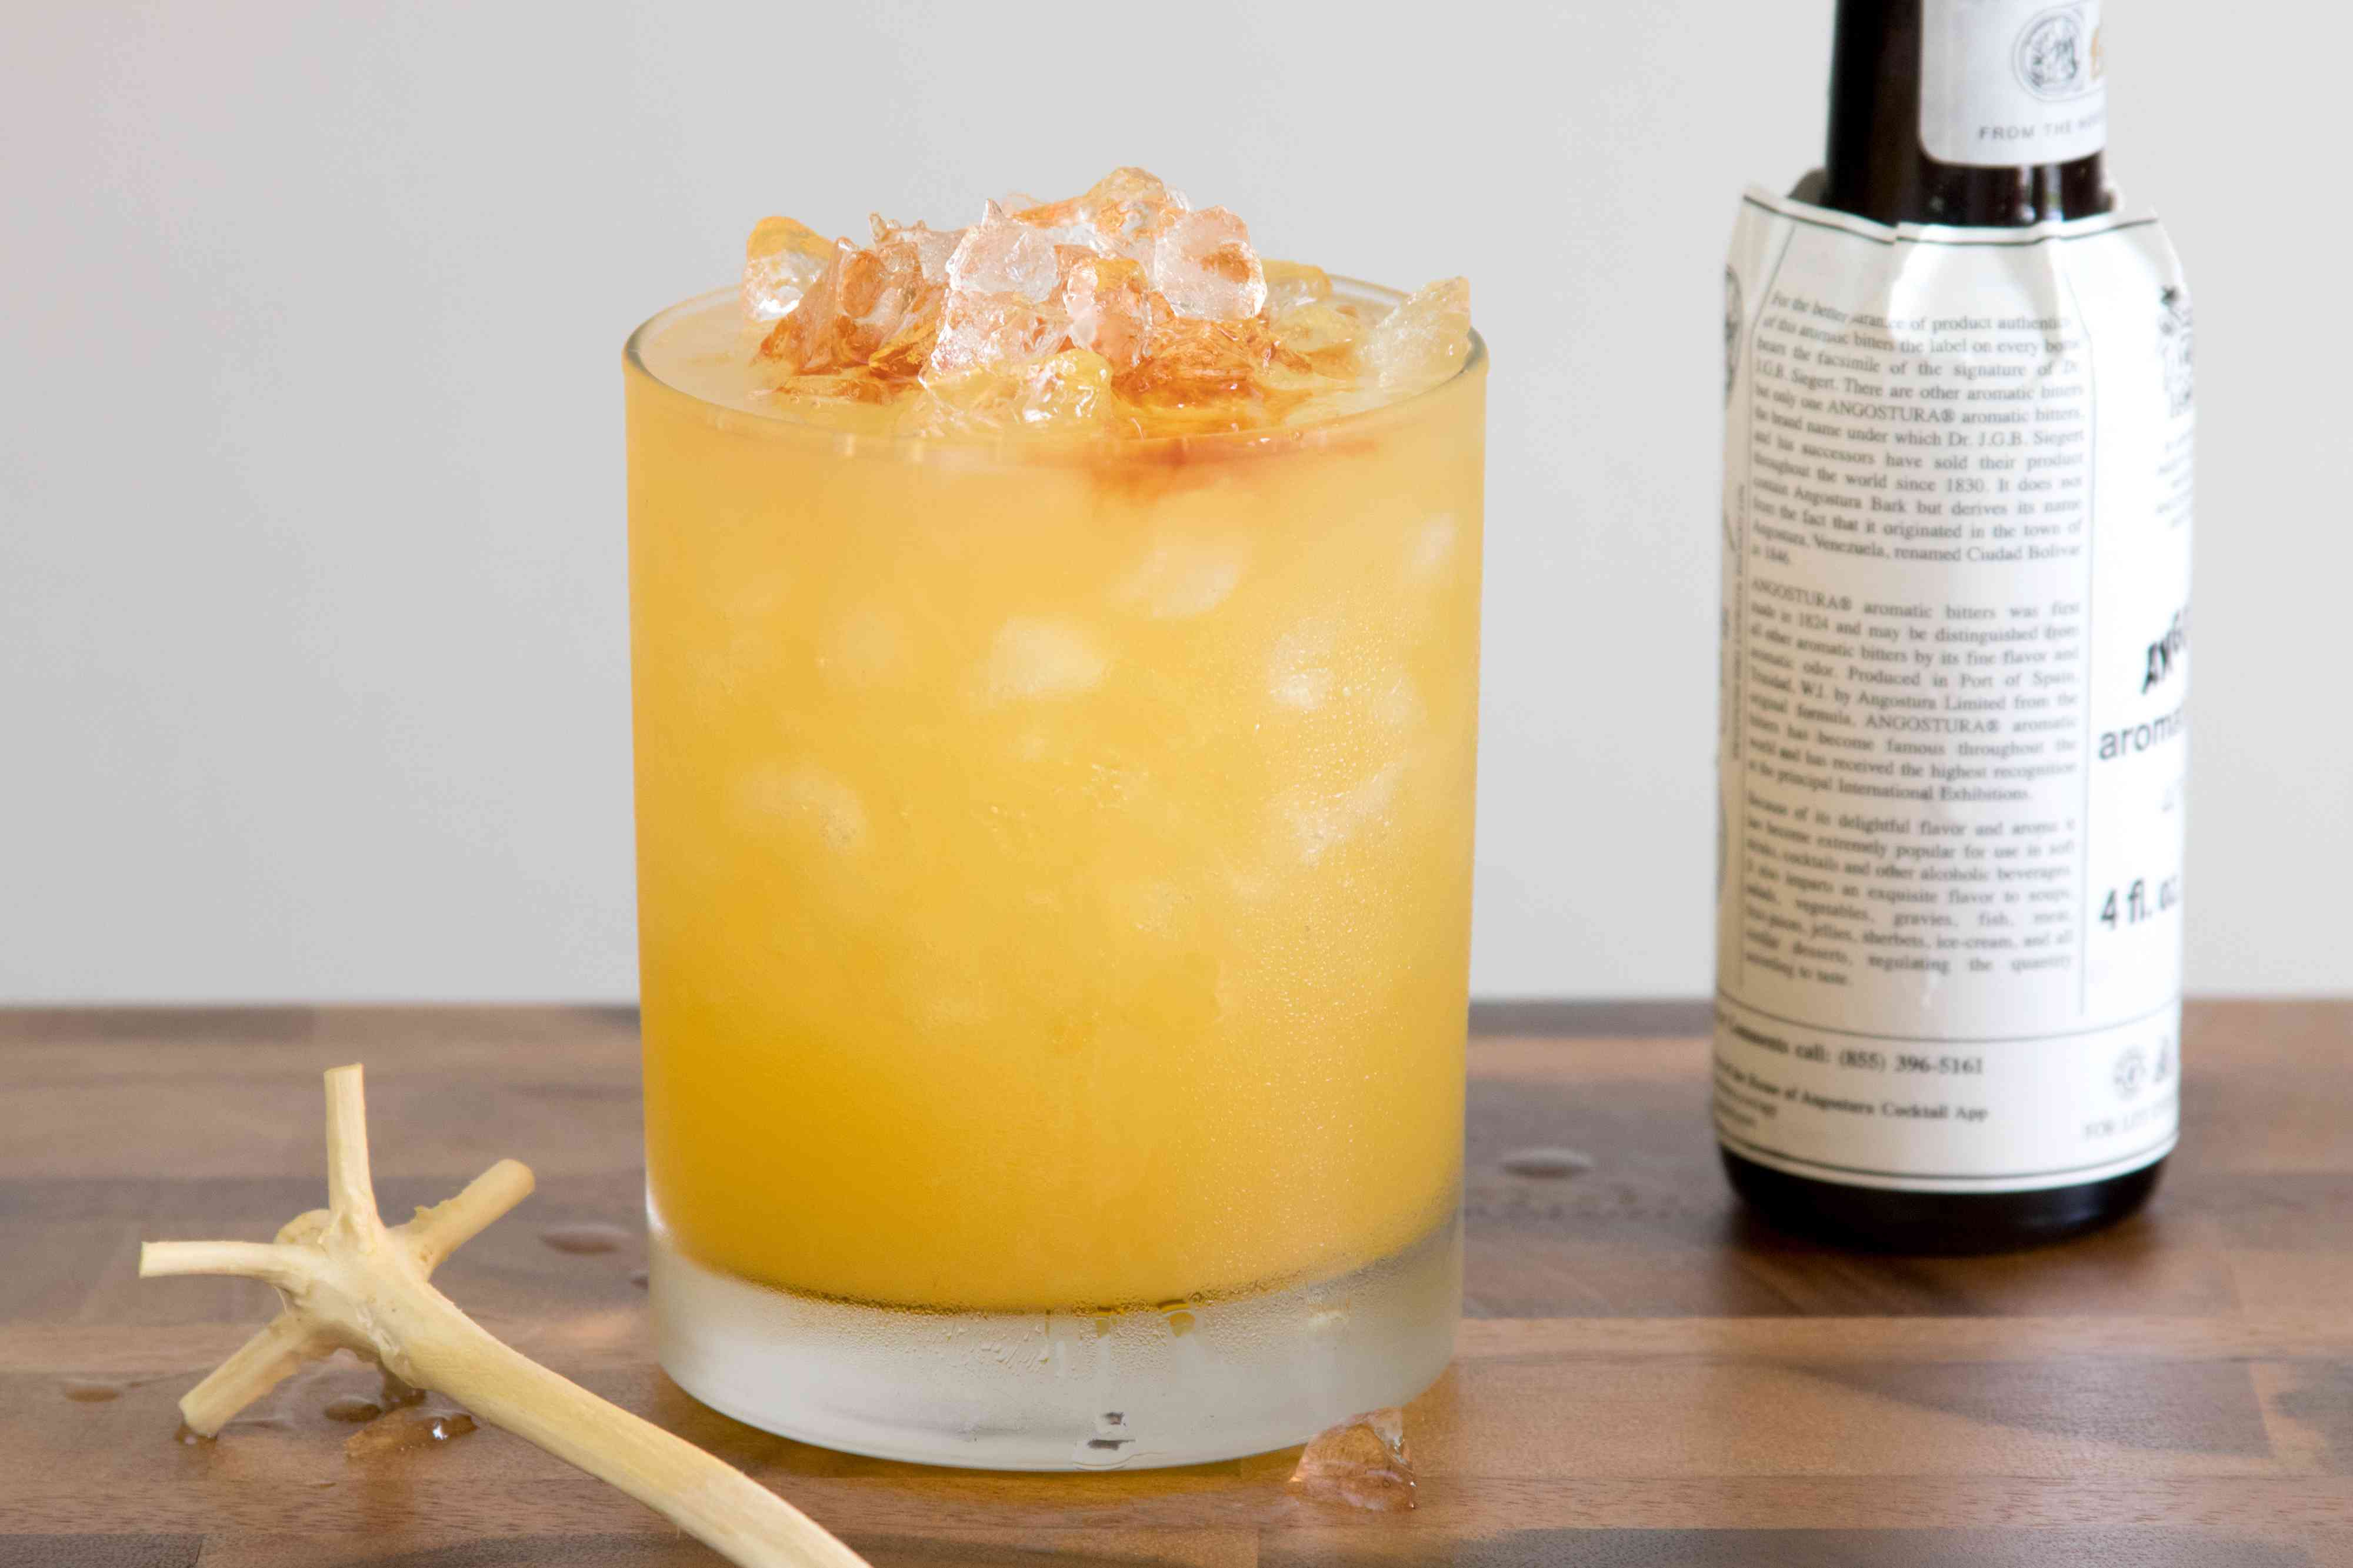 Adding Bitters to a Rum Swizzle Cocktail